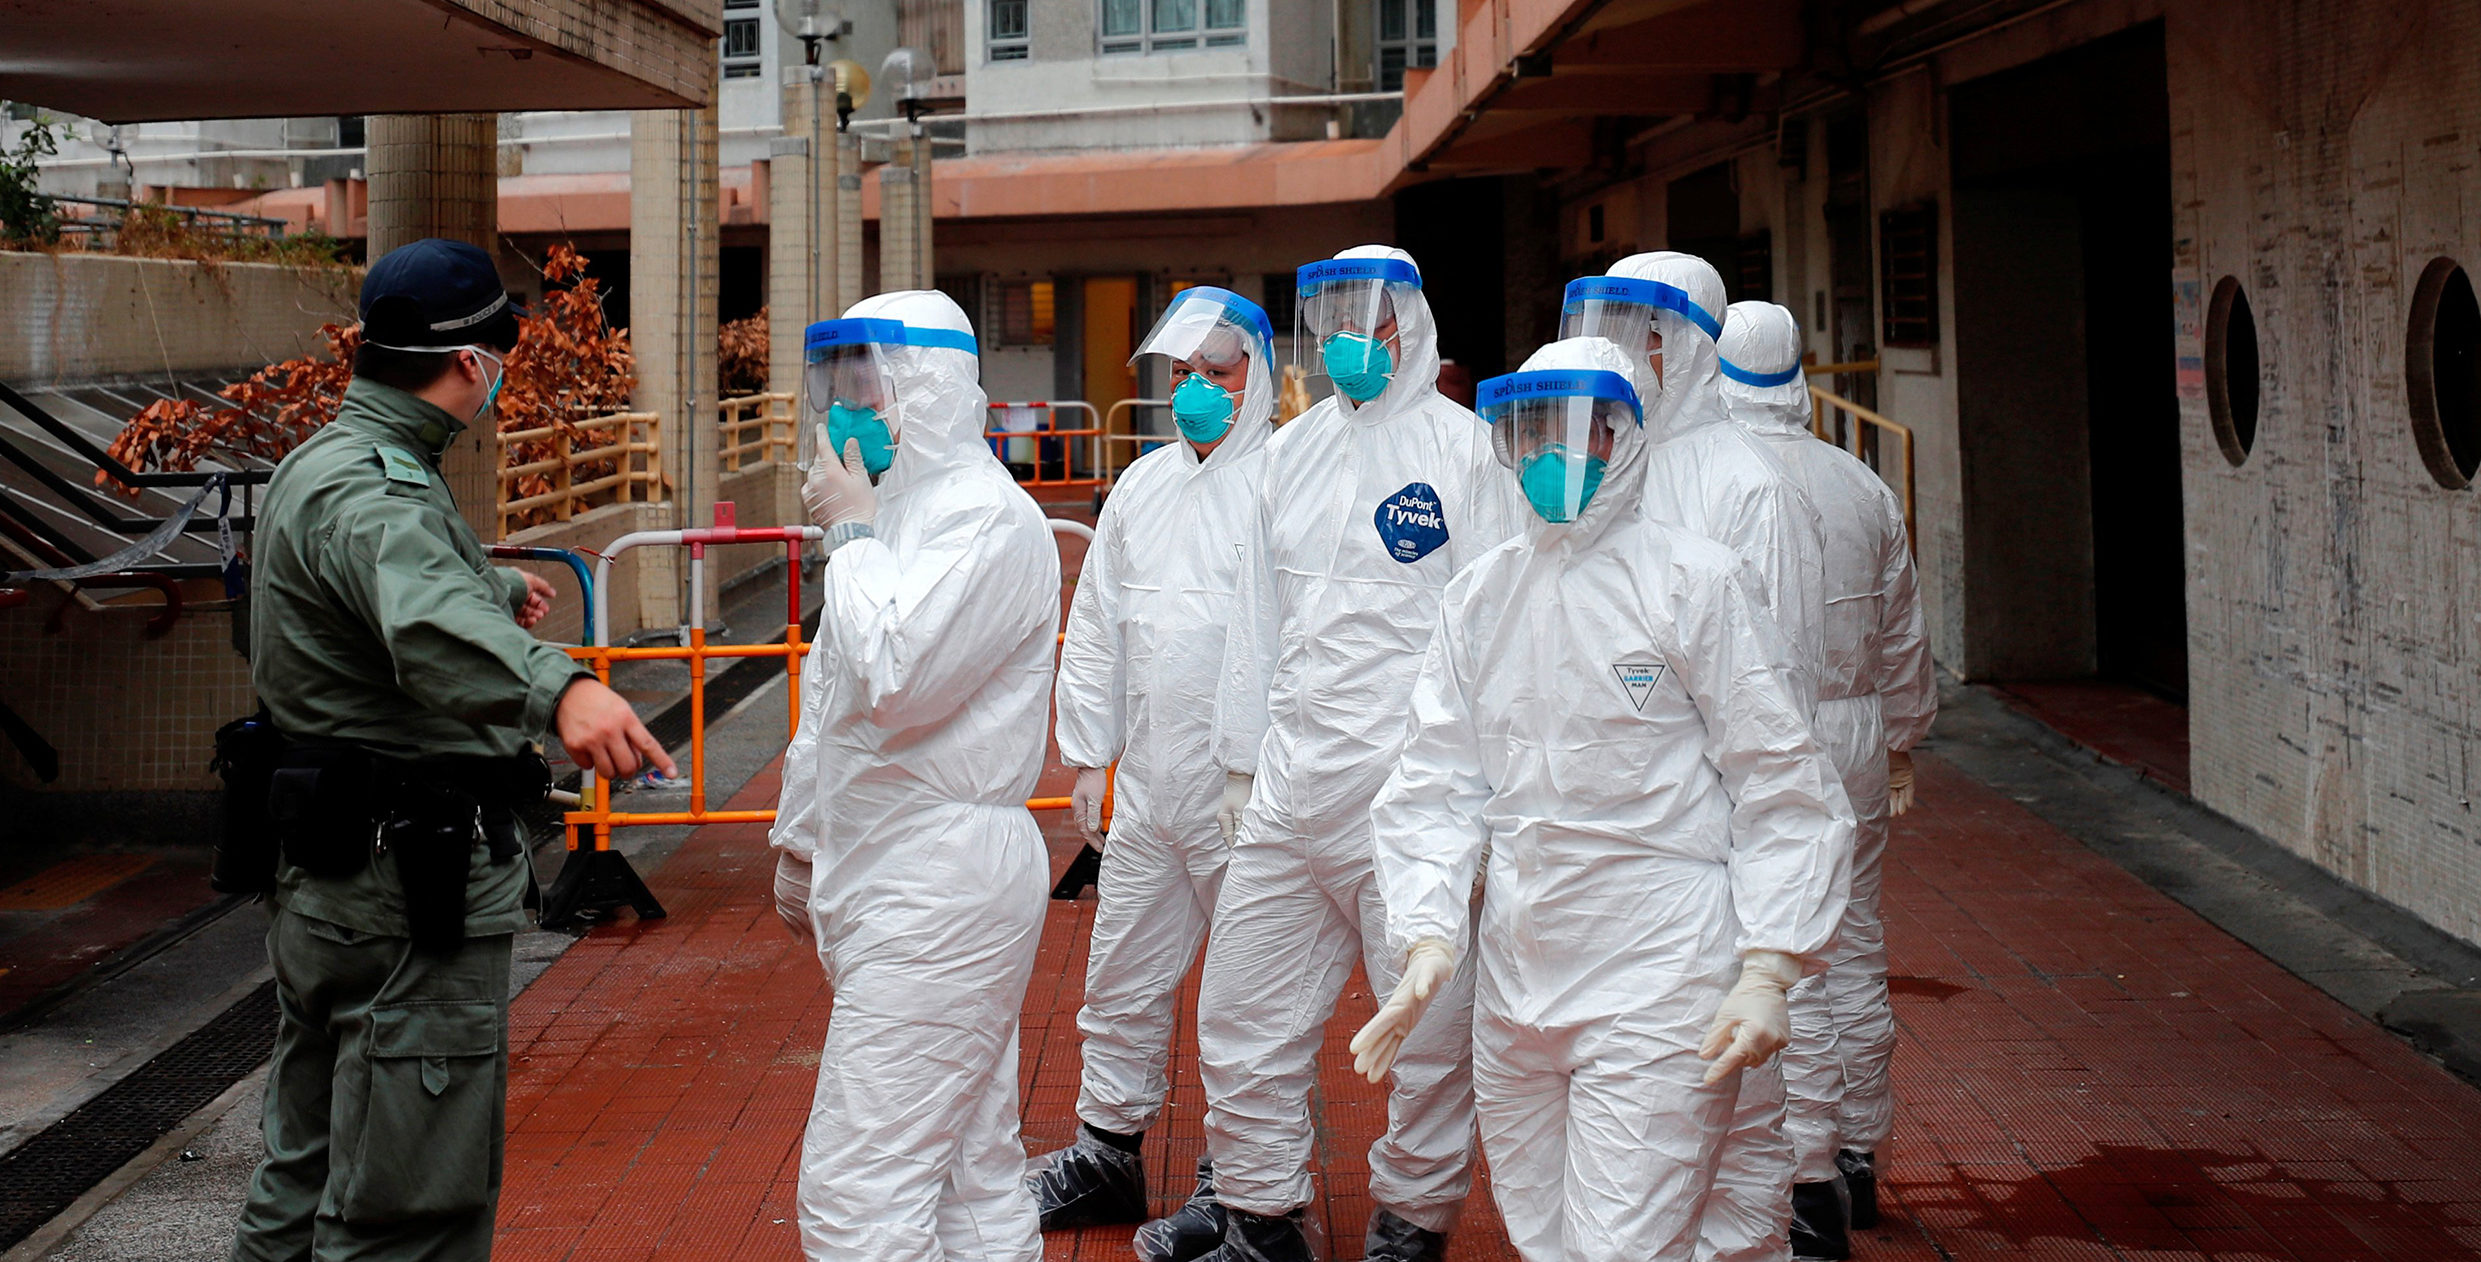 450,000 protective TYVEK suits landed in Dallas, Texas from Vietnam!